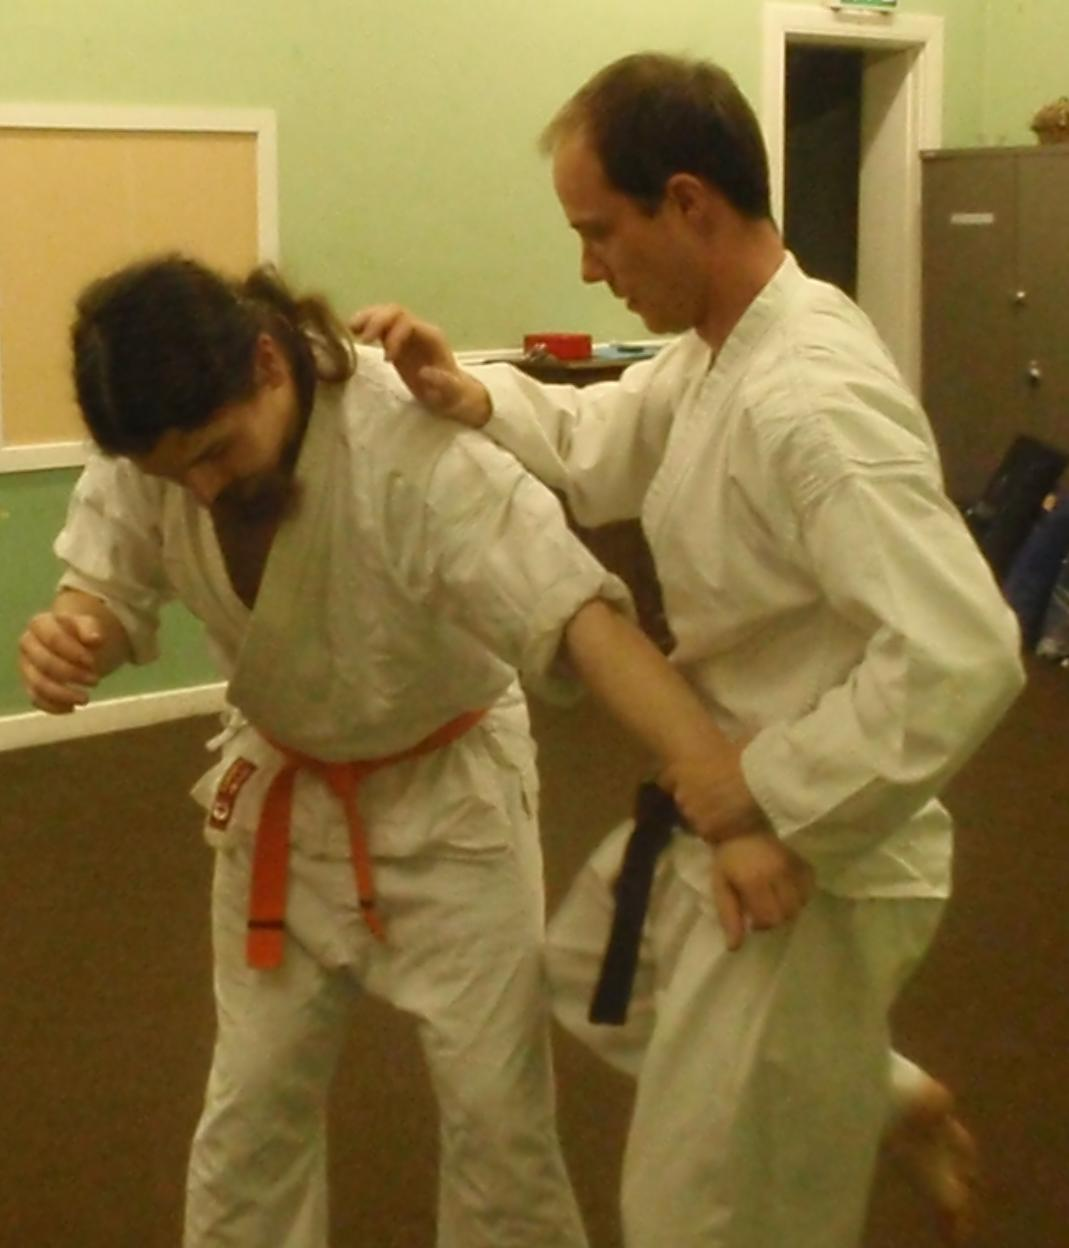 Even if it misses the kyusho point, a knee strike to the thigh works well